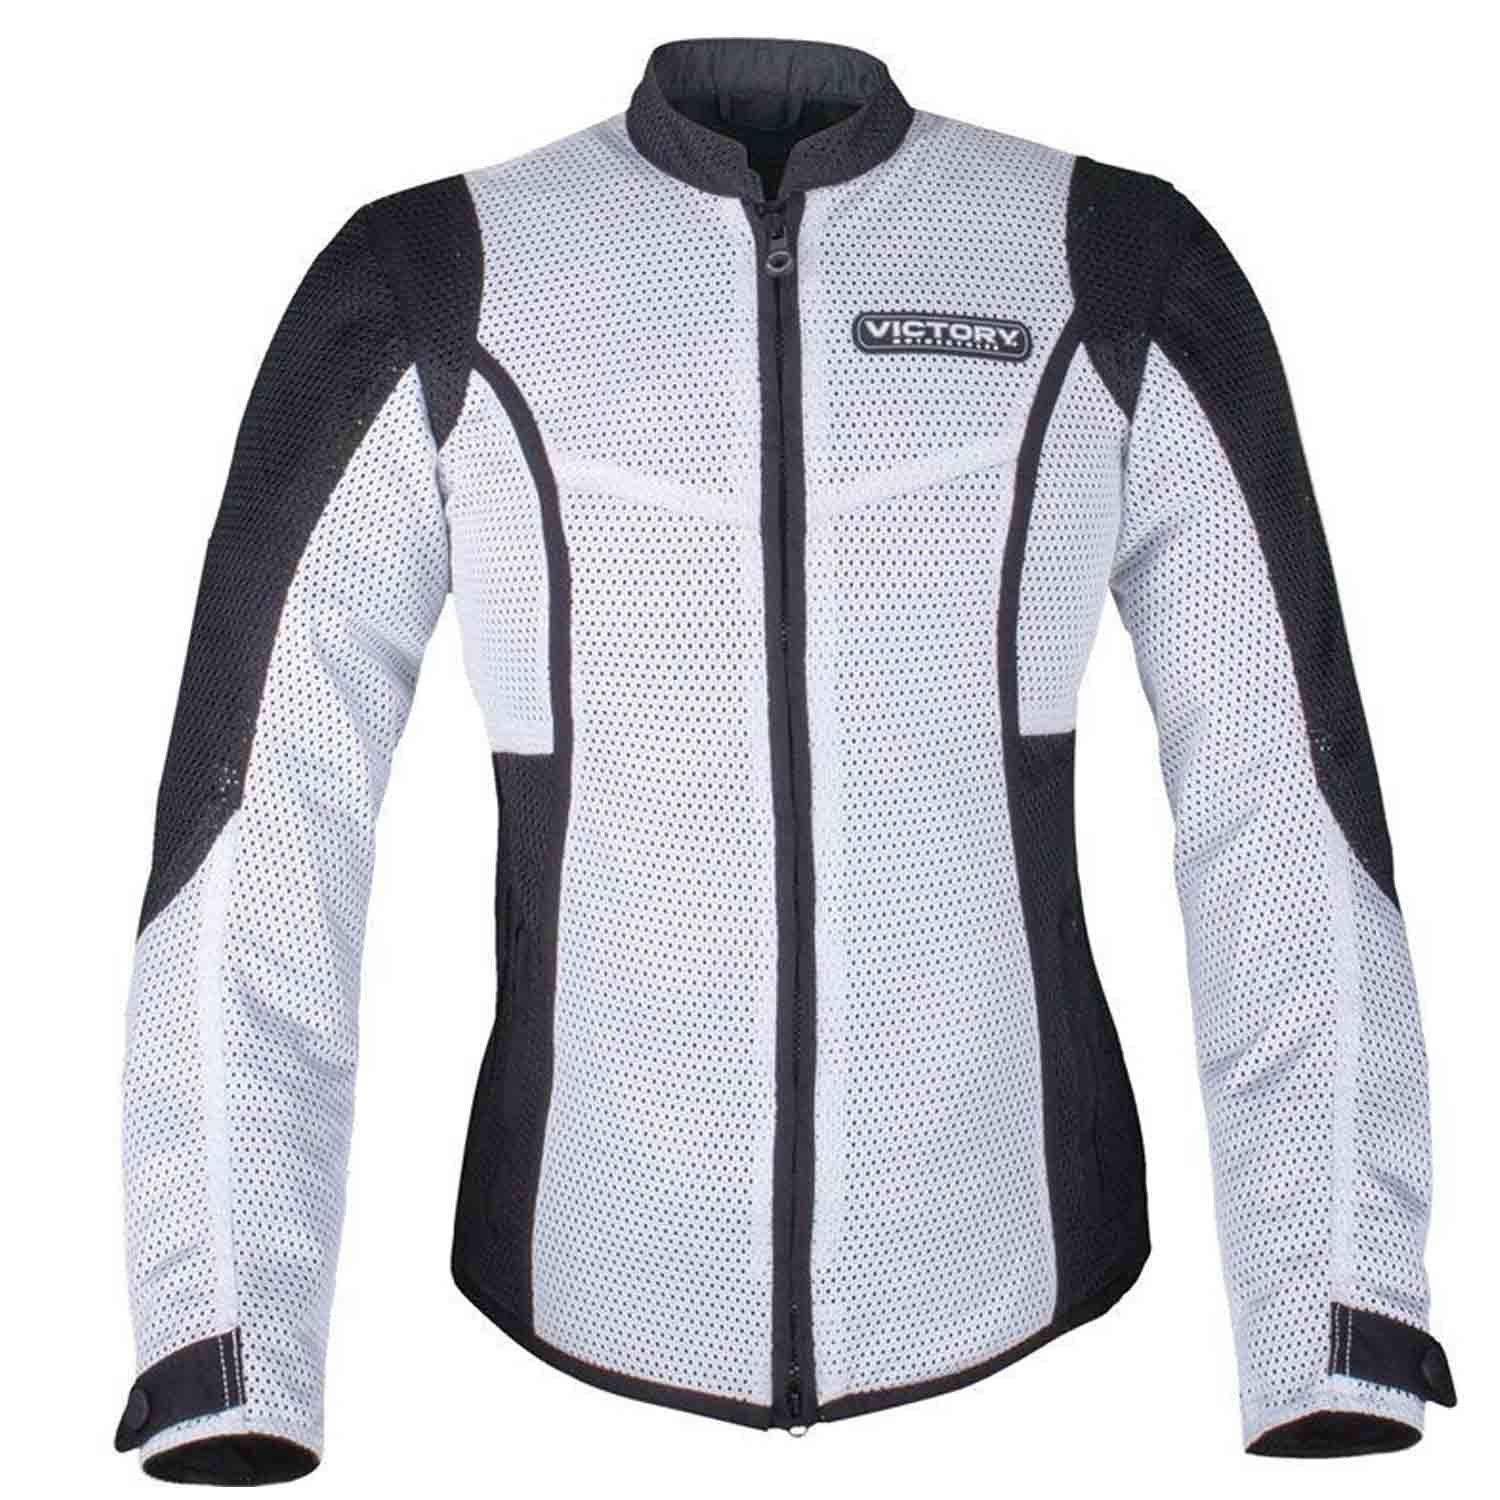 Victory Motorcycle New OEM Women's White Mesh Riding Jacket, Small, 286522102